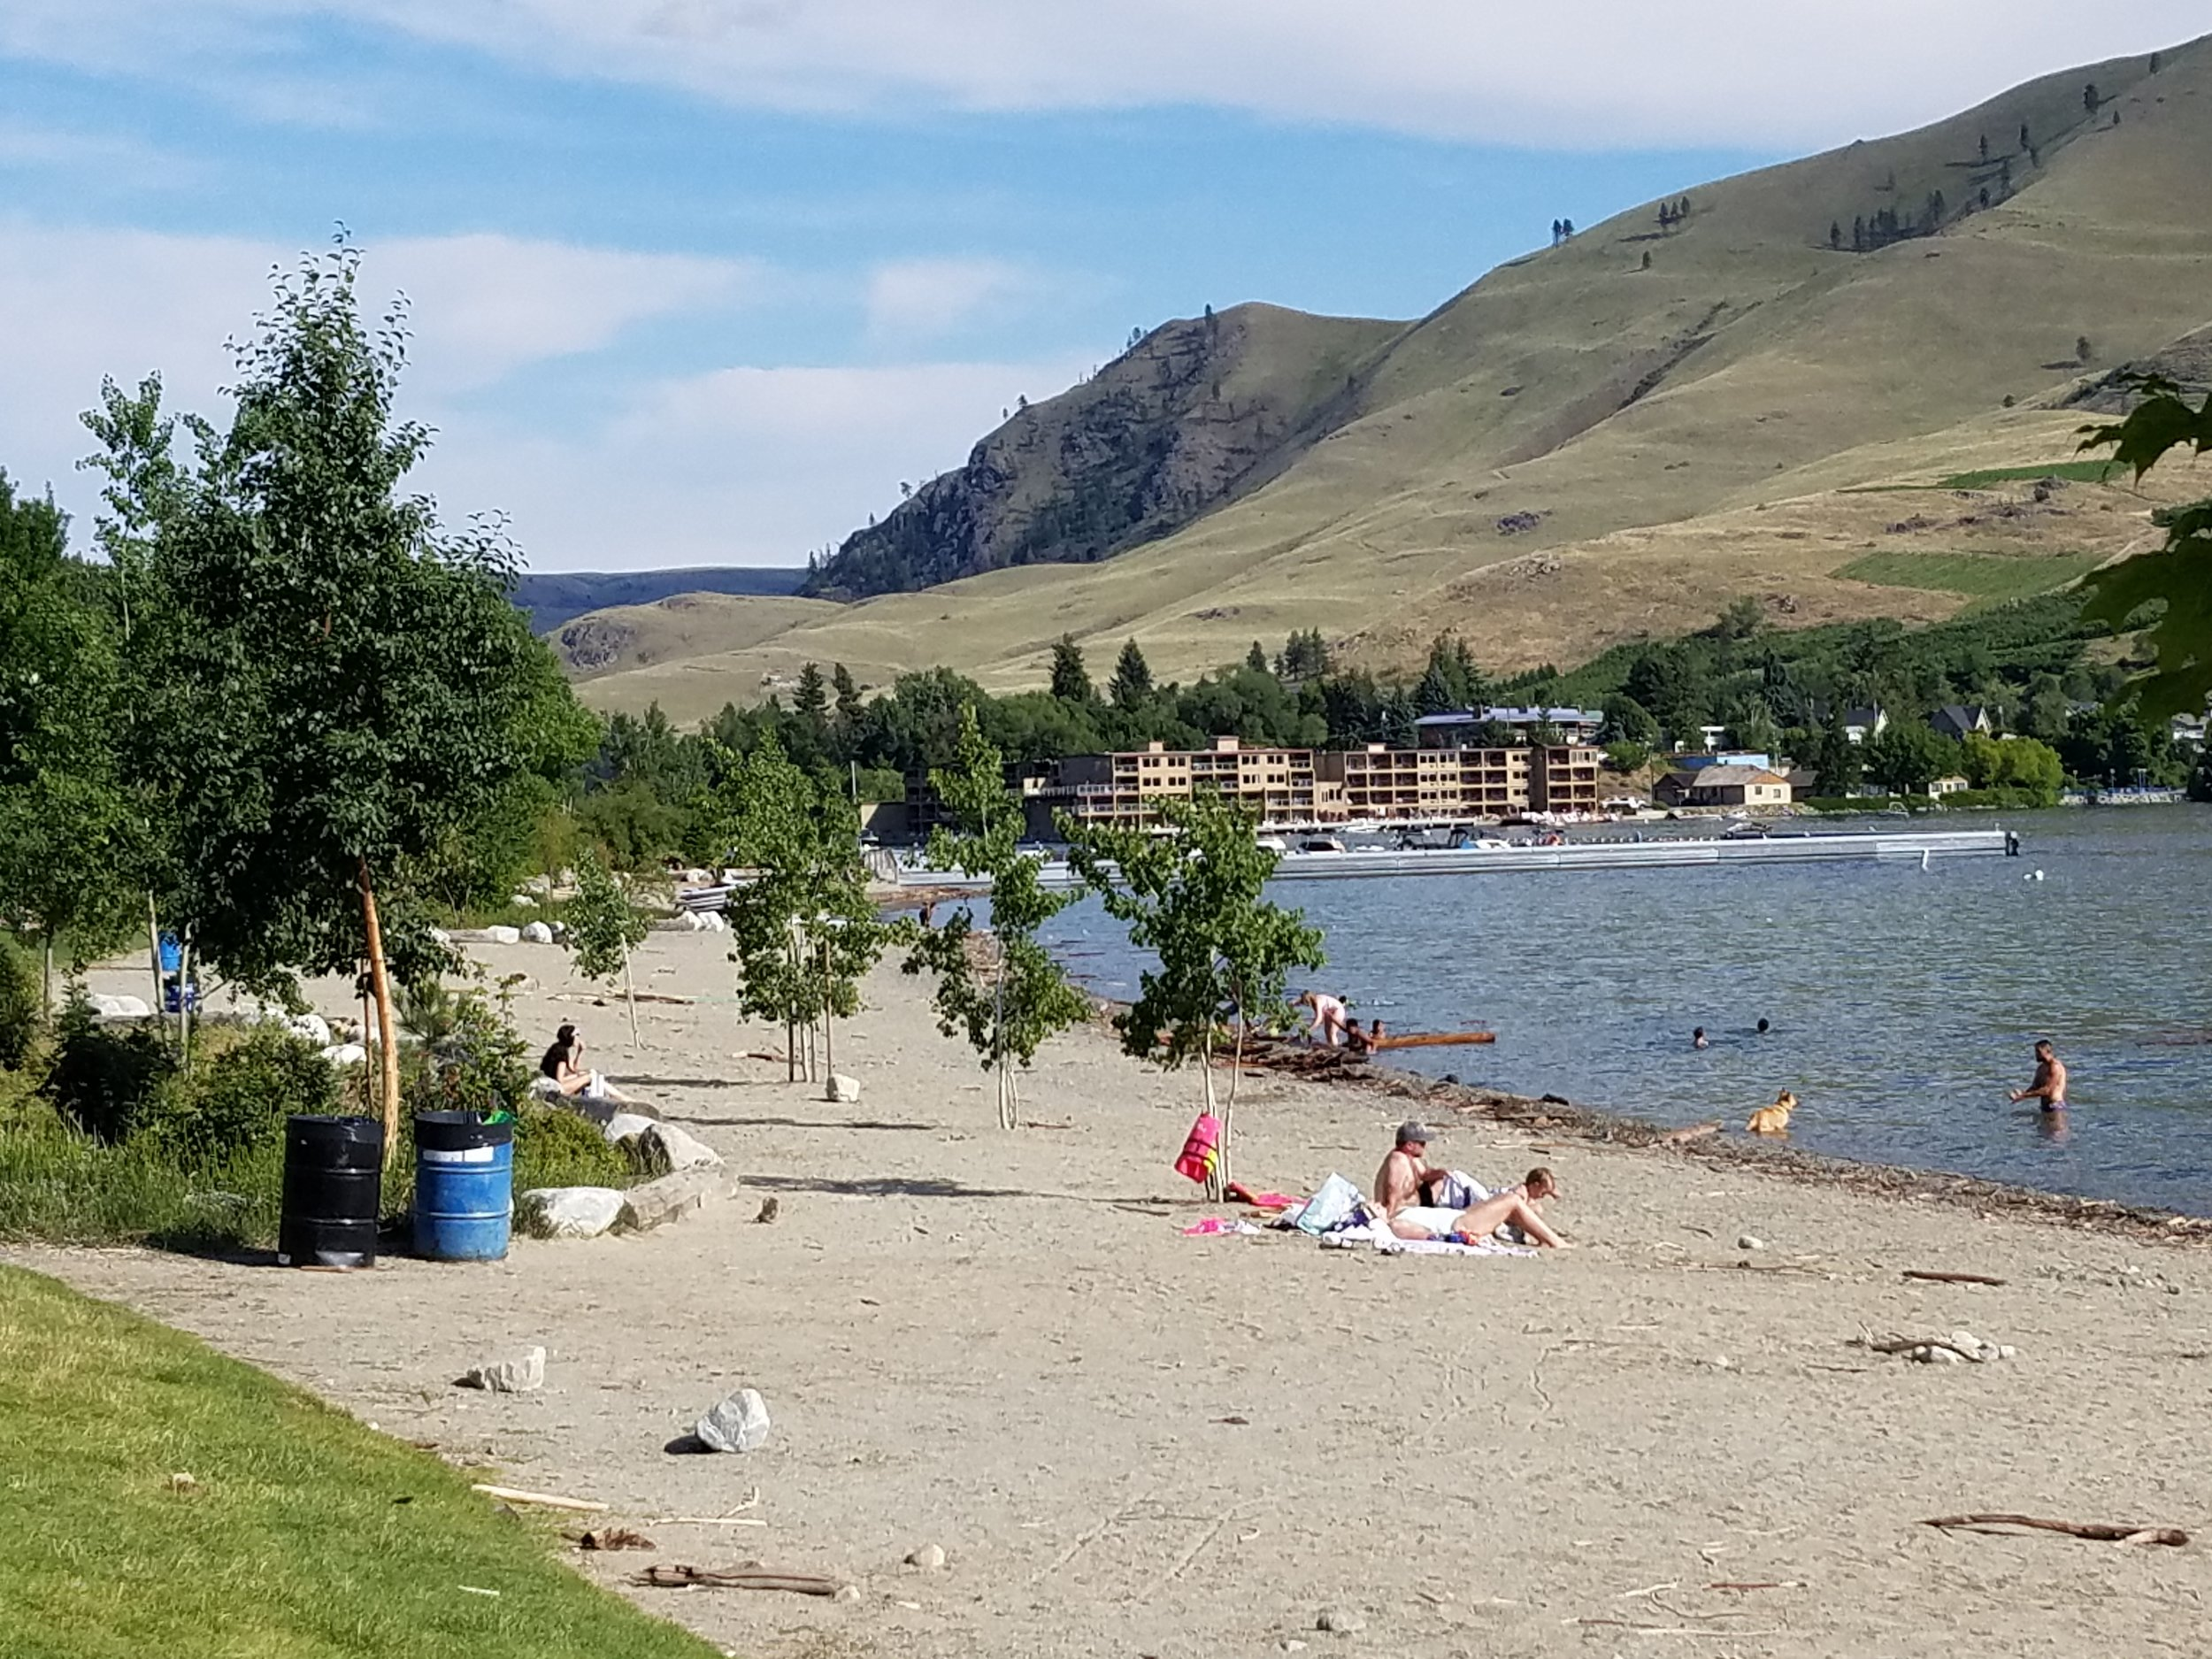 Mild, not wild. The south end of Lake Chelan in July is a popular destination. The water was warm enough to be popular for swimming (not just dipping 'n' screaming) and clear enough to see all the way to the bottom. (Photo by M.M Ruth)